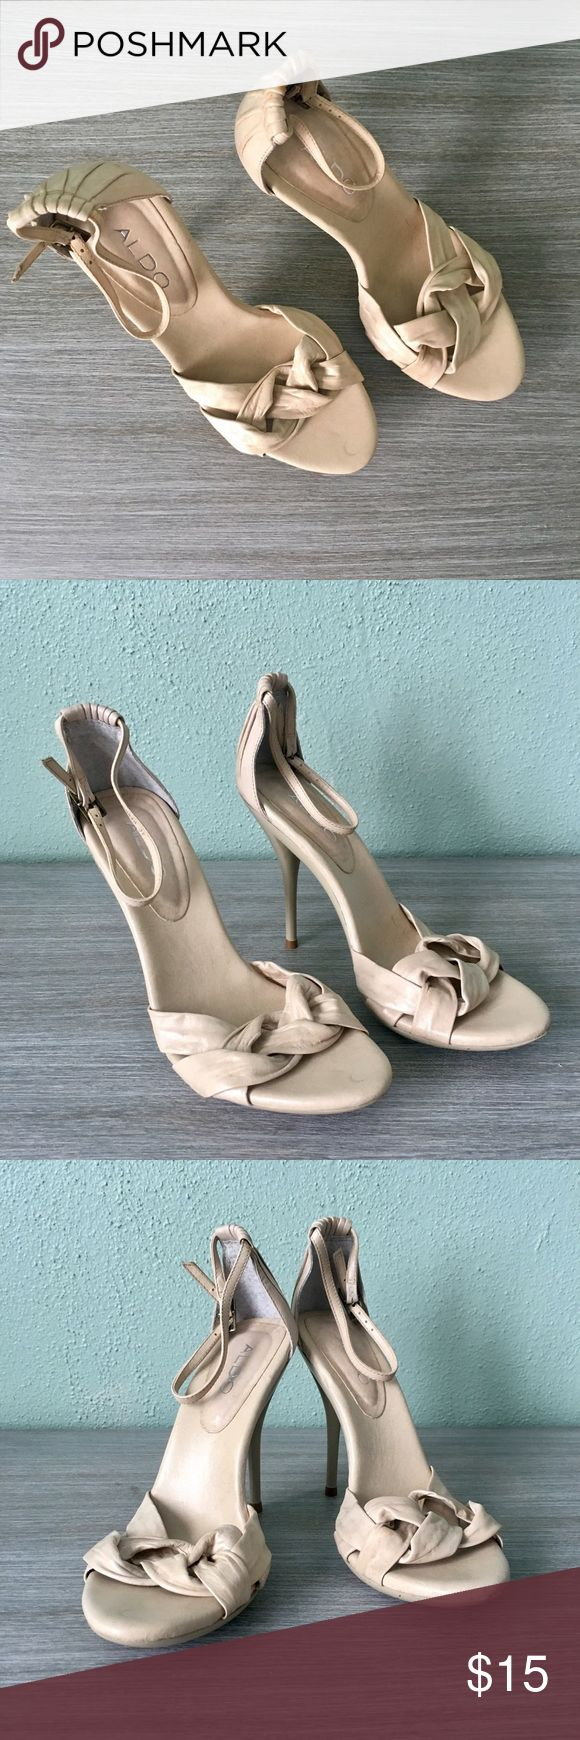 Aldo Nude Strappy High Heel Sandals Worn once in excellent condition (as pictured). Aldo Nude strappy high heeled sandals. Great summer basic. Versatile color goes with everything. True to size. Aldo Shoes Heels